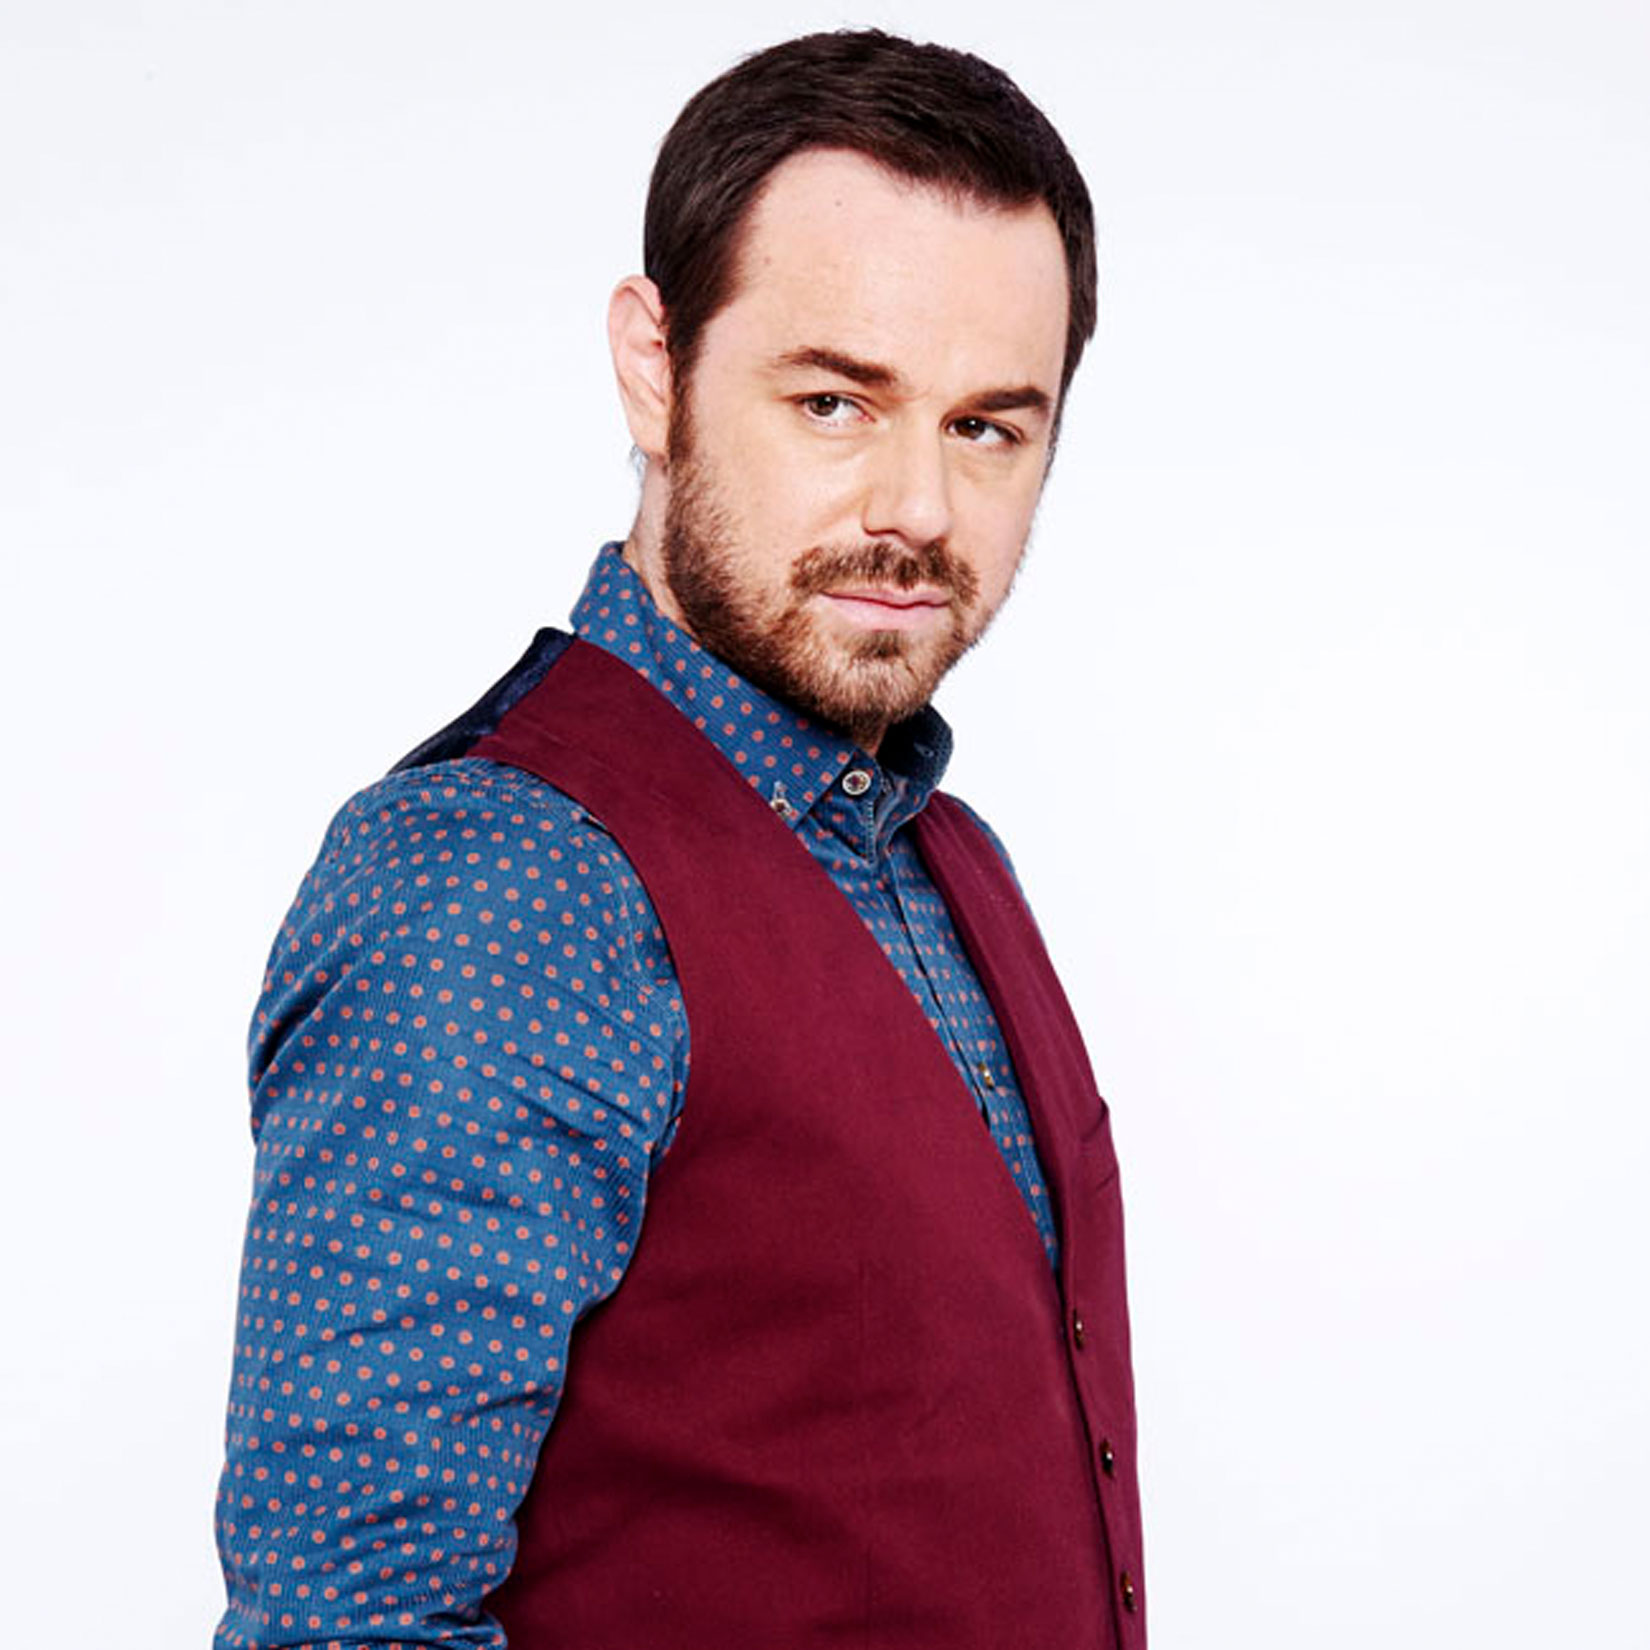 Danny Dyer will jailed as Mick Carter for Eastende